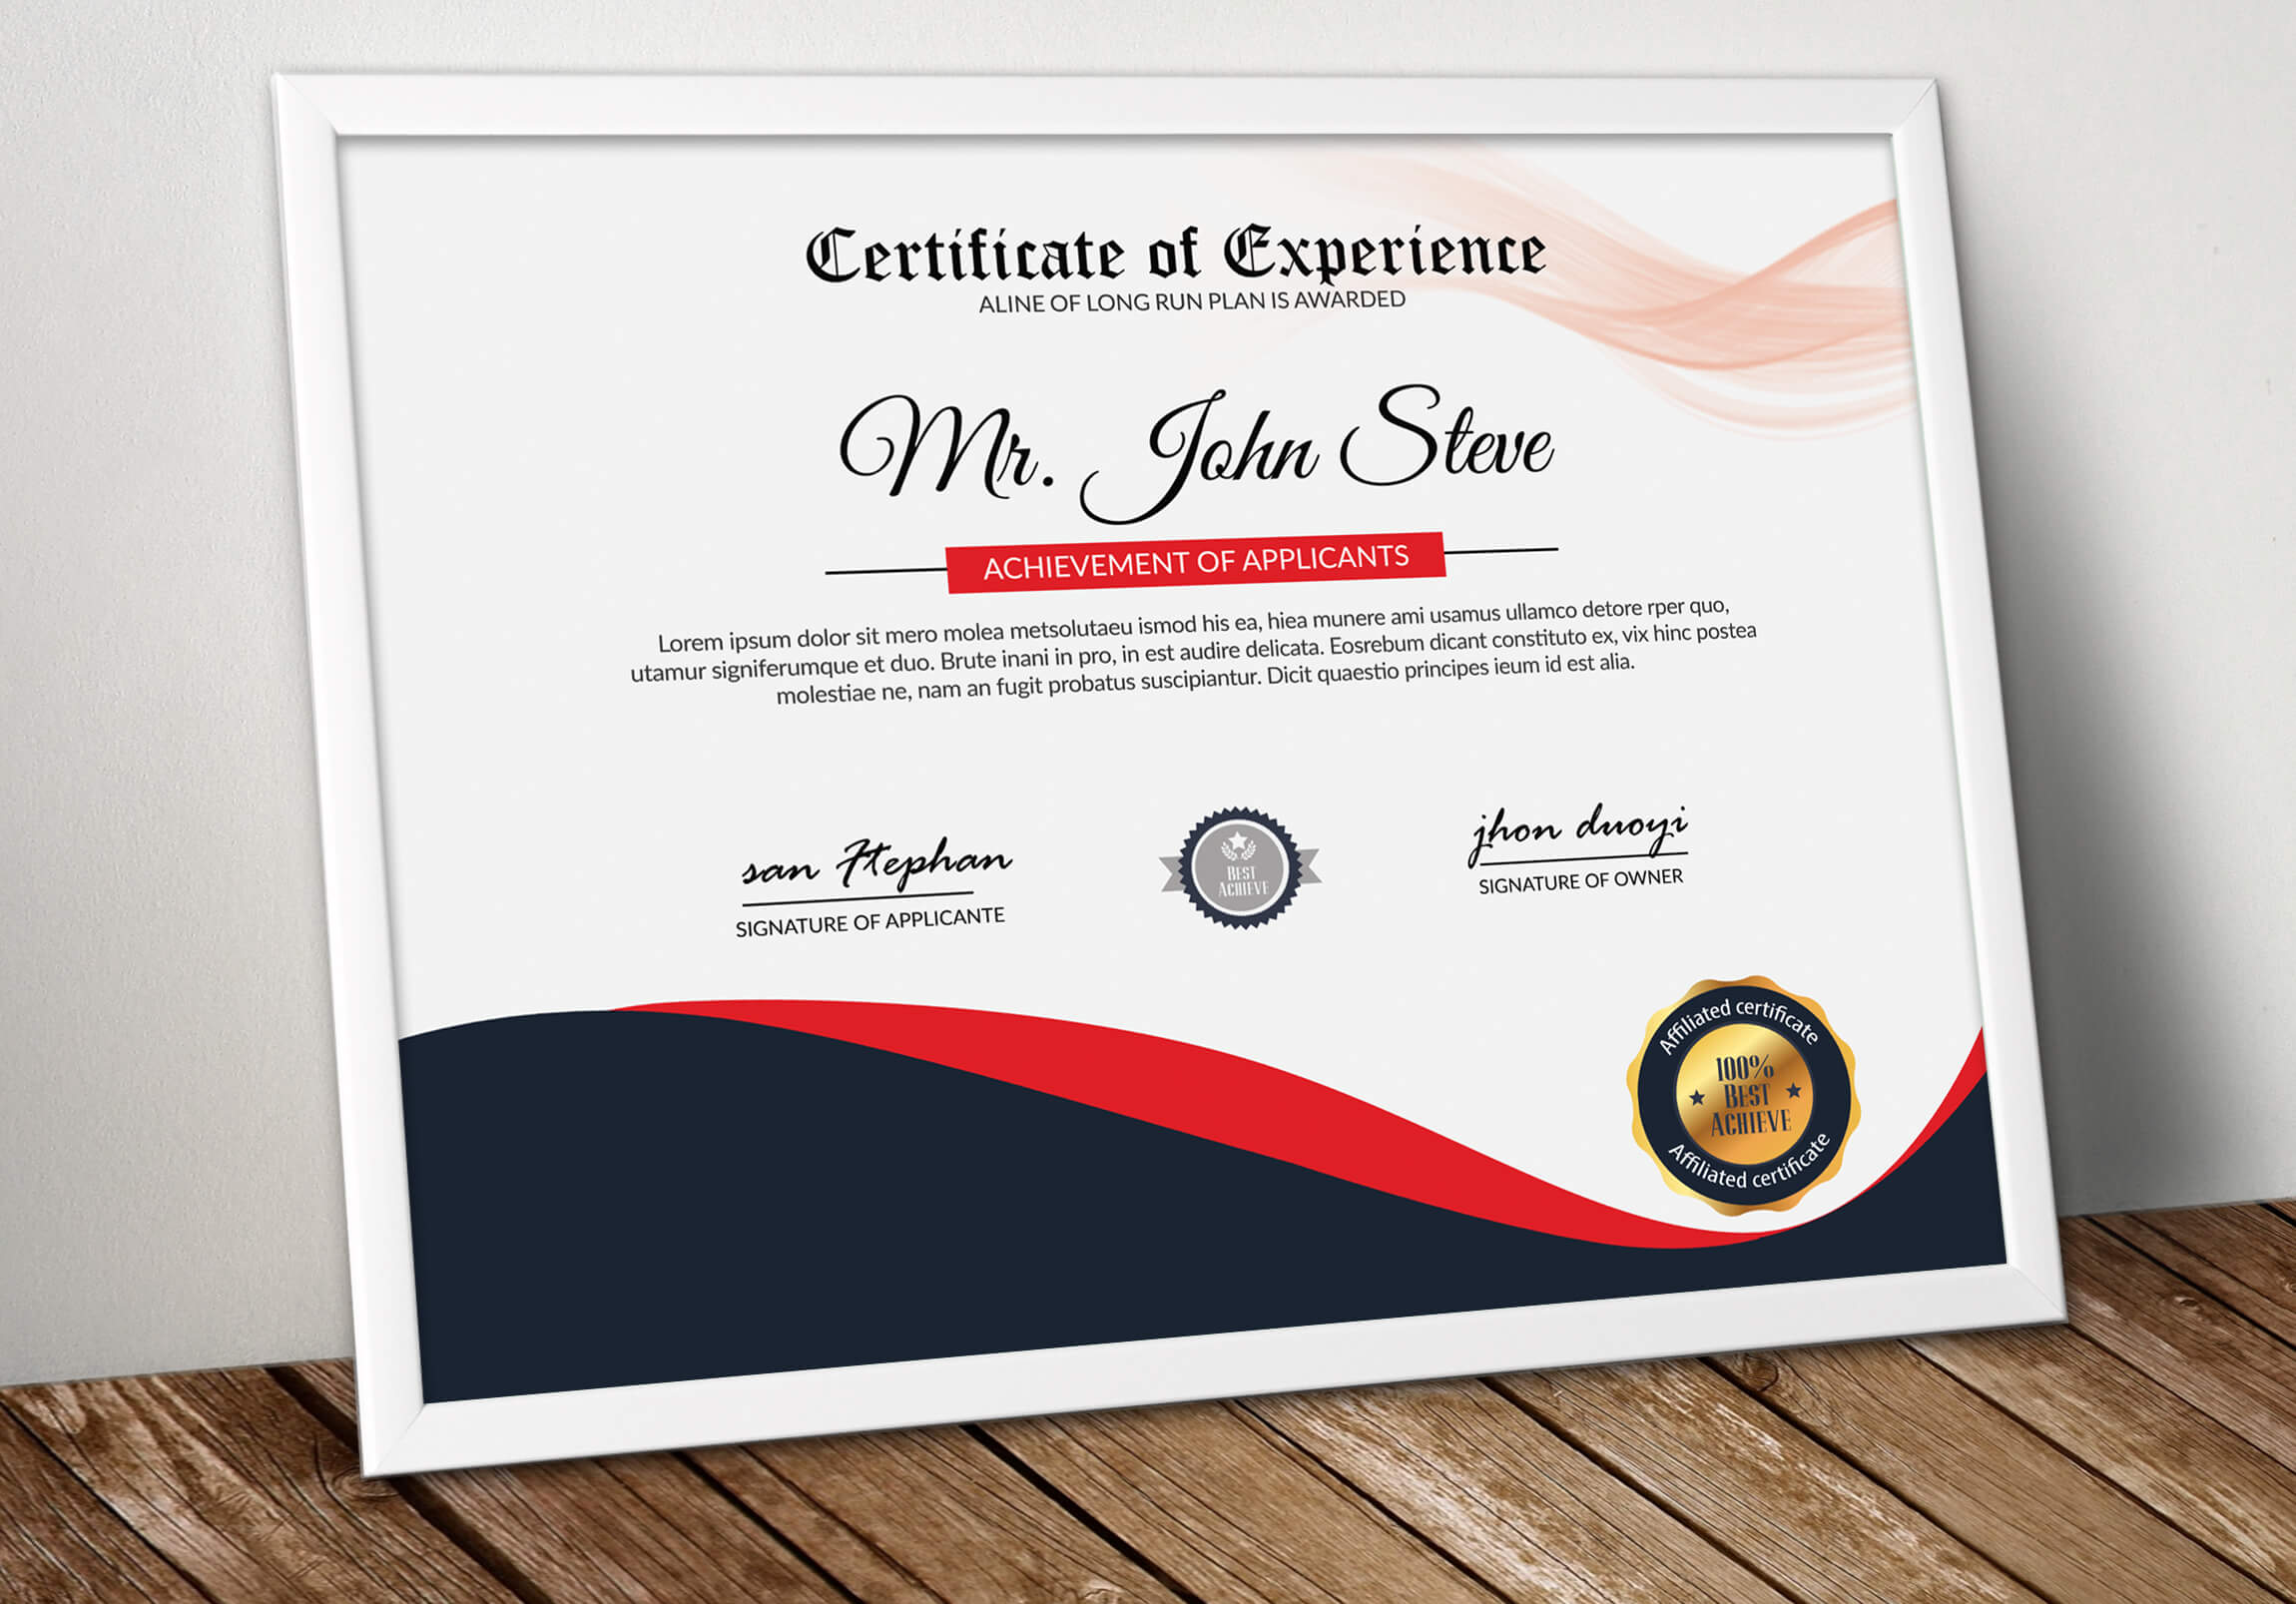 Diploma Certificate Template Word - Vsual Pertaining To Professional Certificate Templates For Word